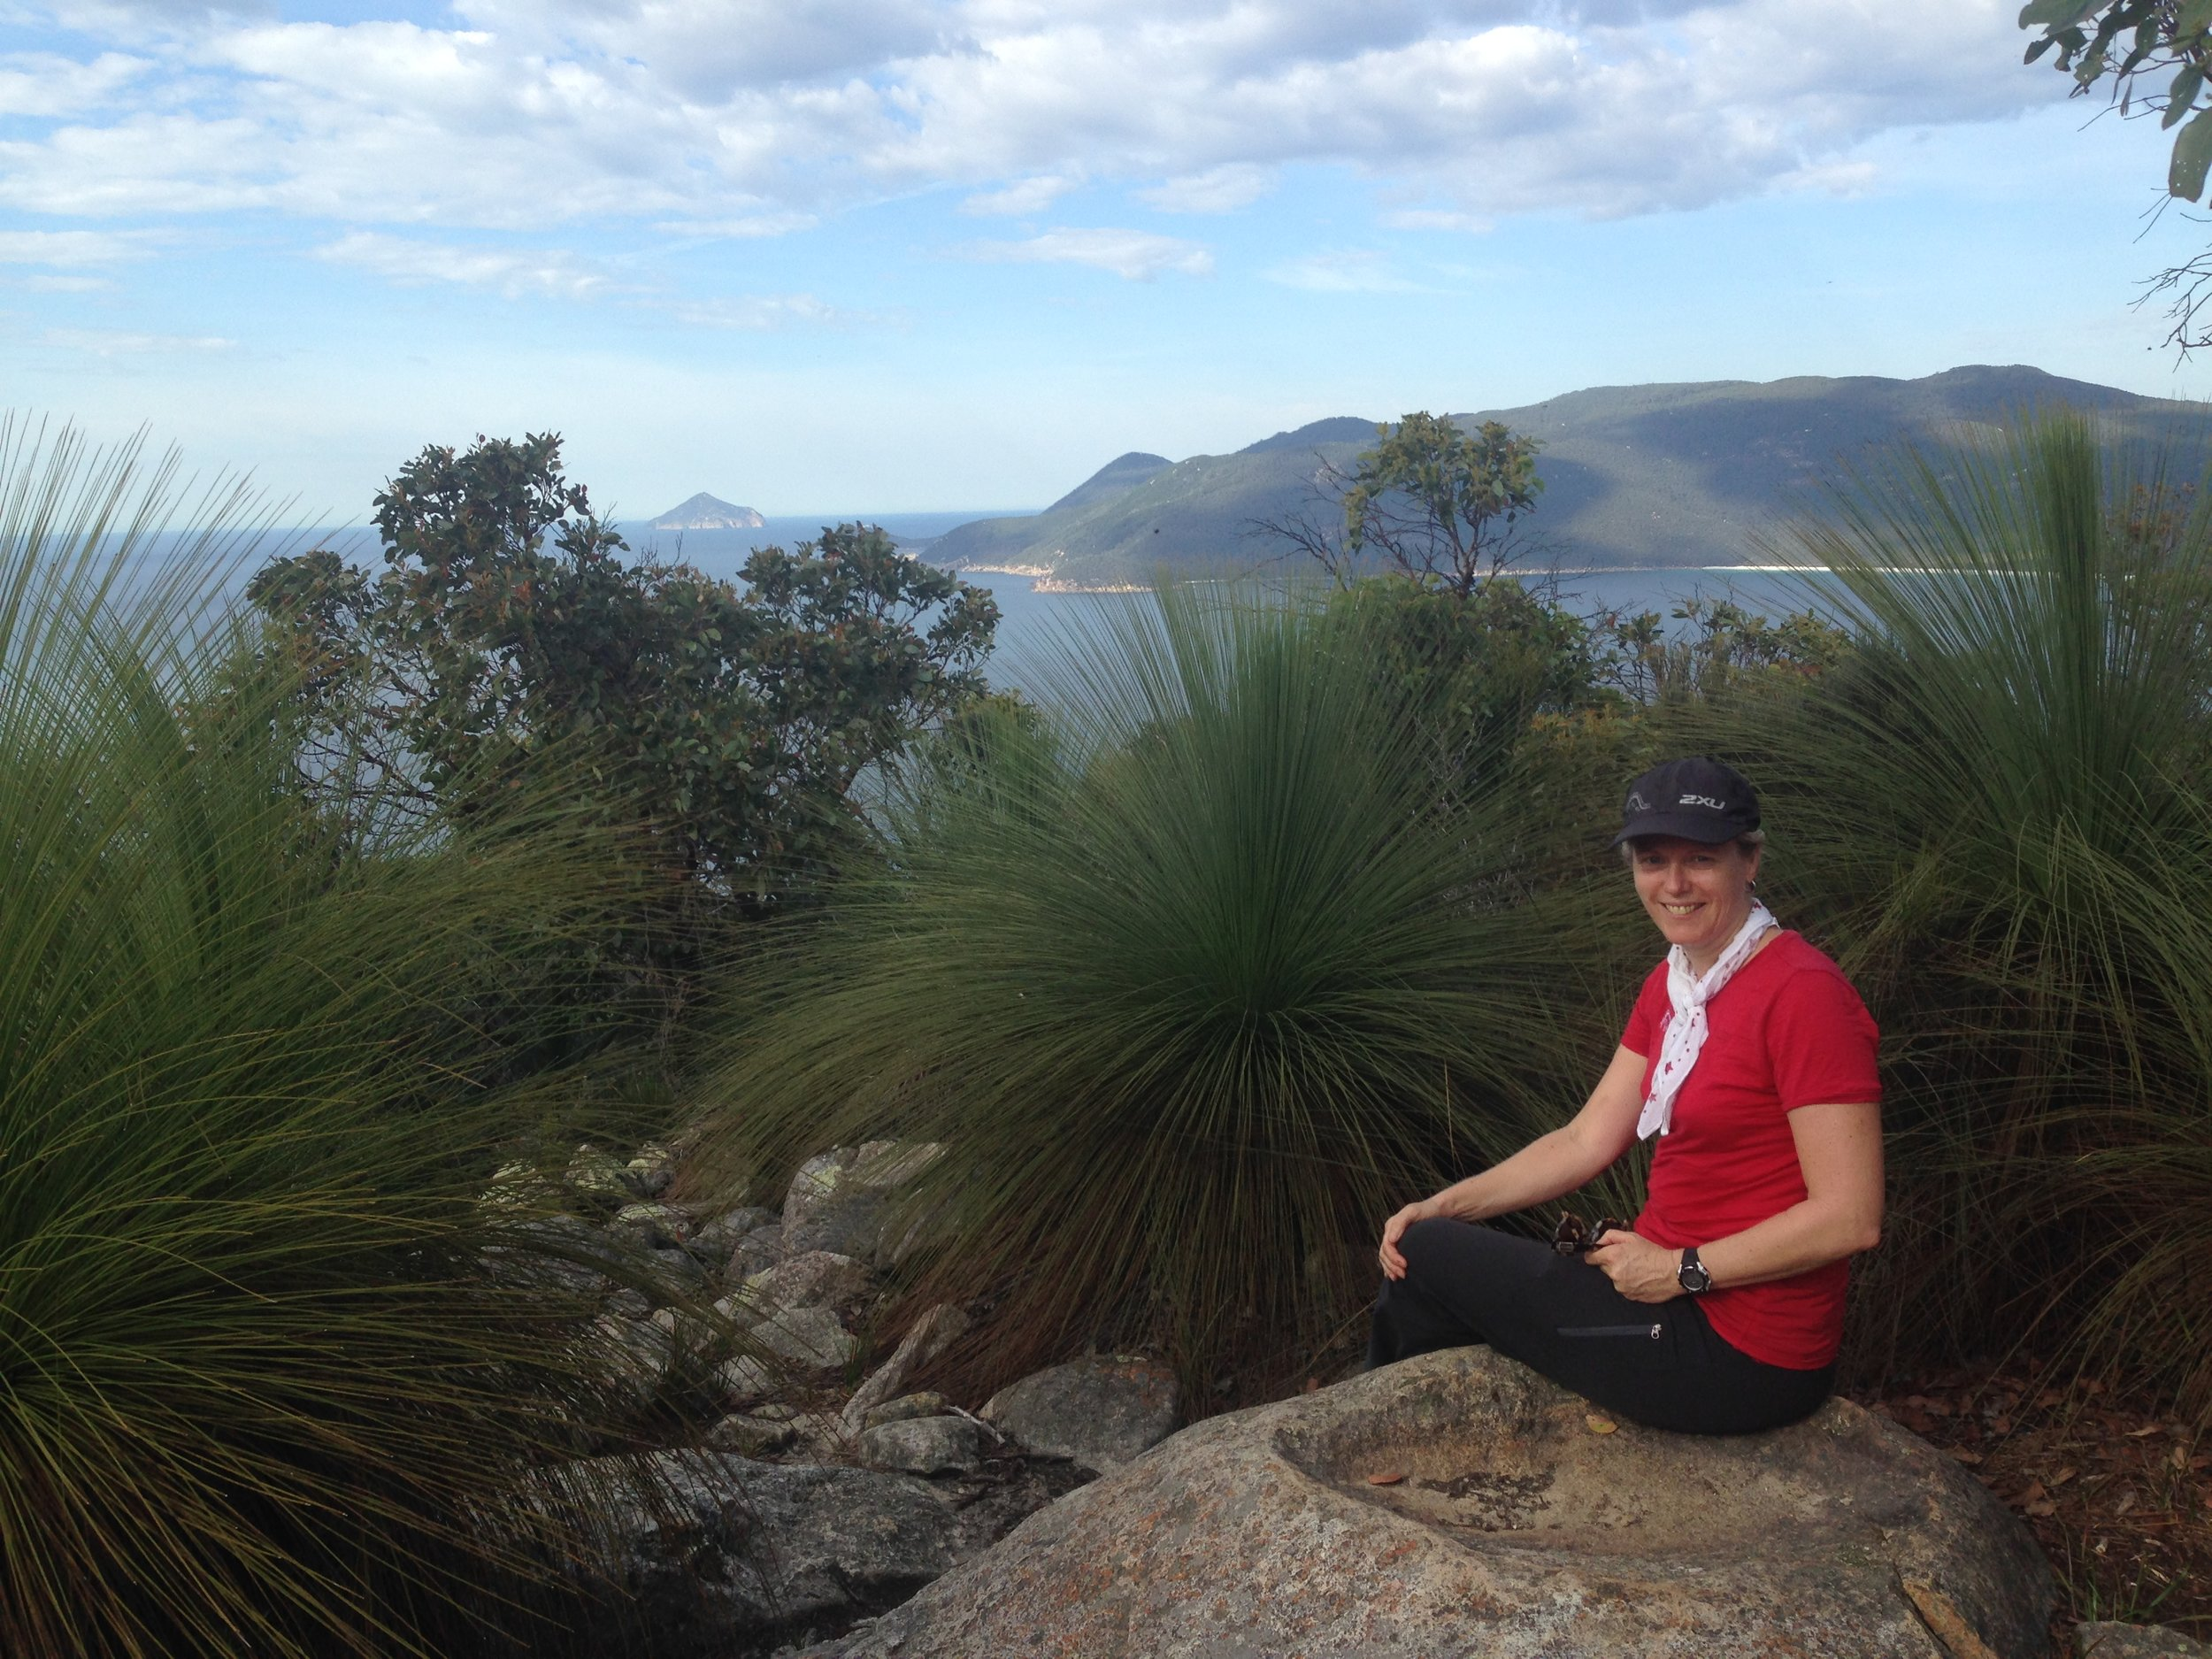 Sally Piper at Wilsons Promontory, where her novel is loosely based. Piper did a five-day solo hike in the area as research for the book.  Photo: Supplied